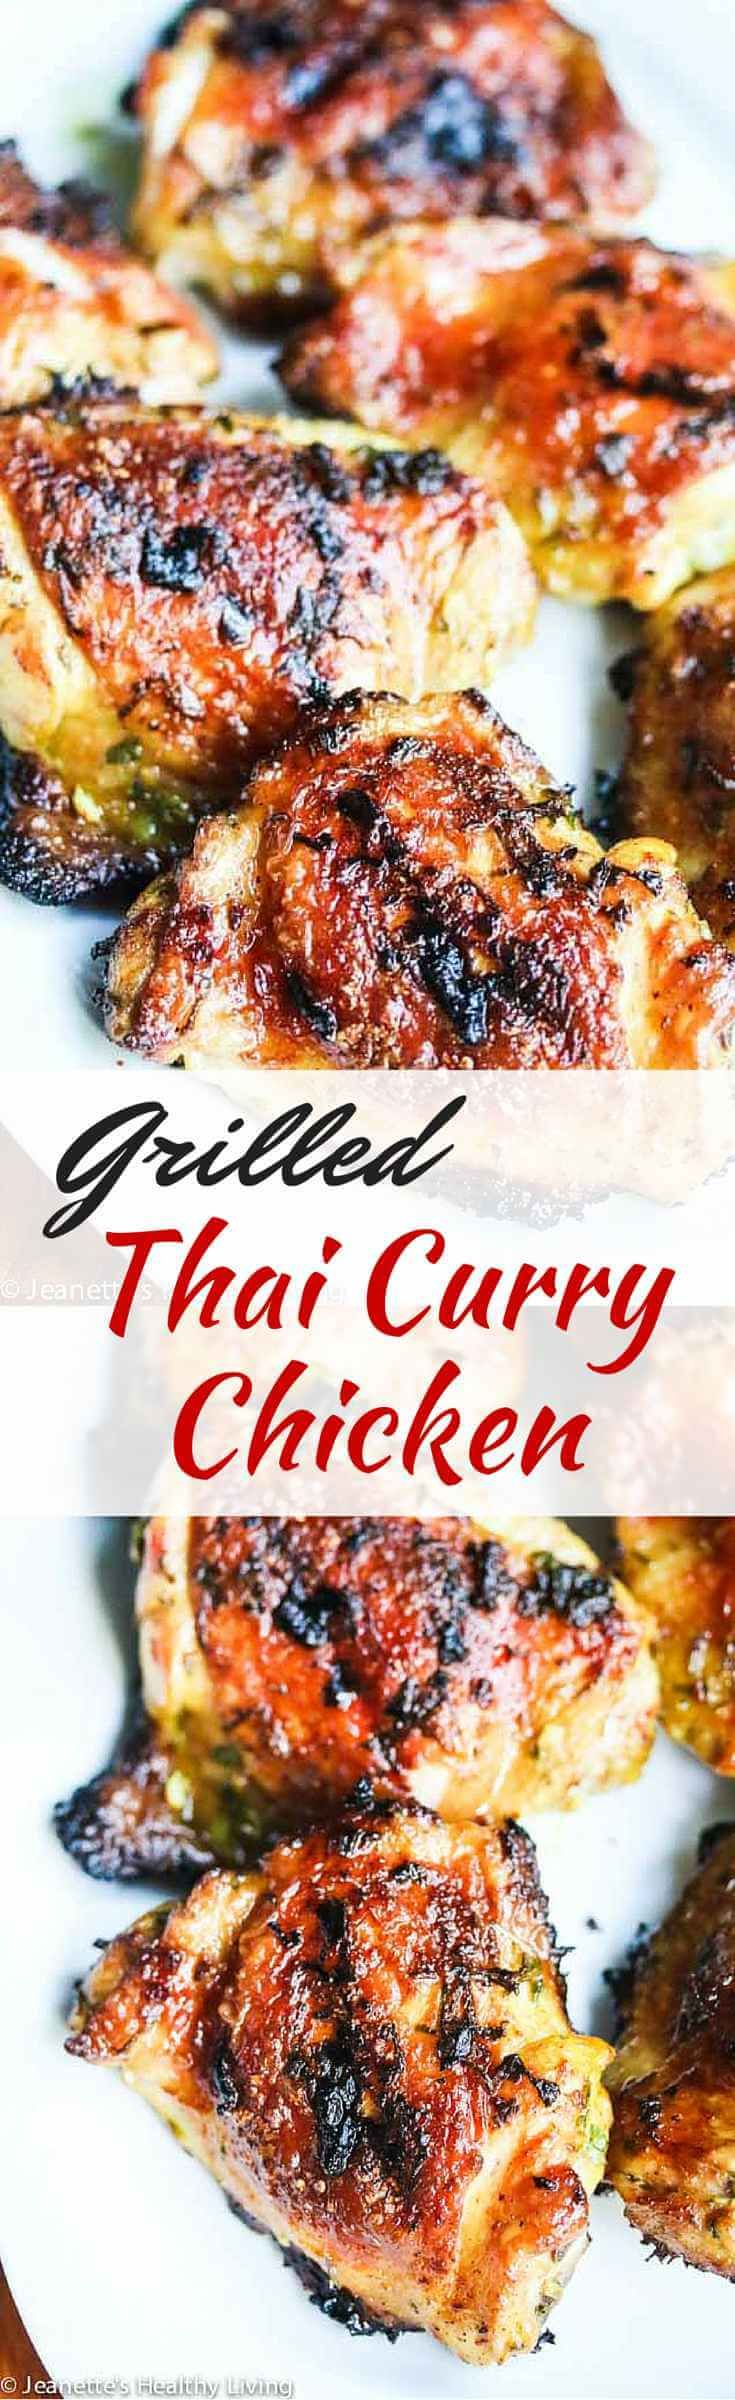 Grilled Thai Curry Cilantro Garlic Chicken - this is so easy and delicious - it's our go-to summer barbecue recipe ~ http://jeanetteshealthyliving.com